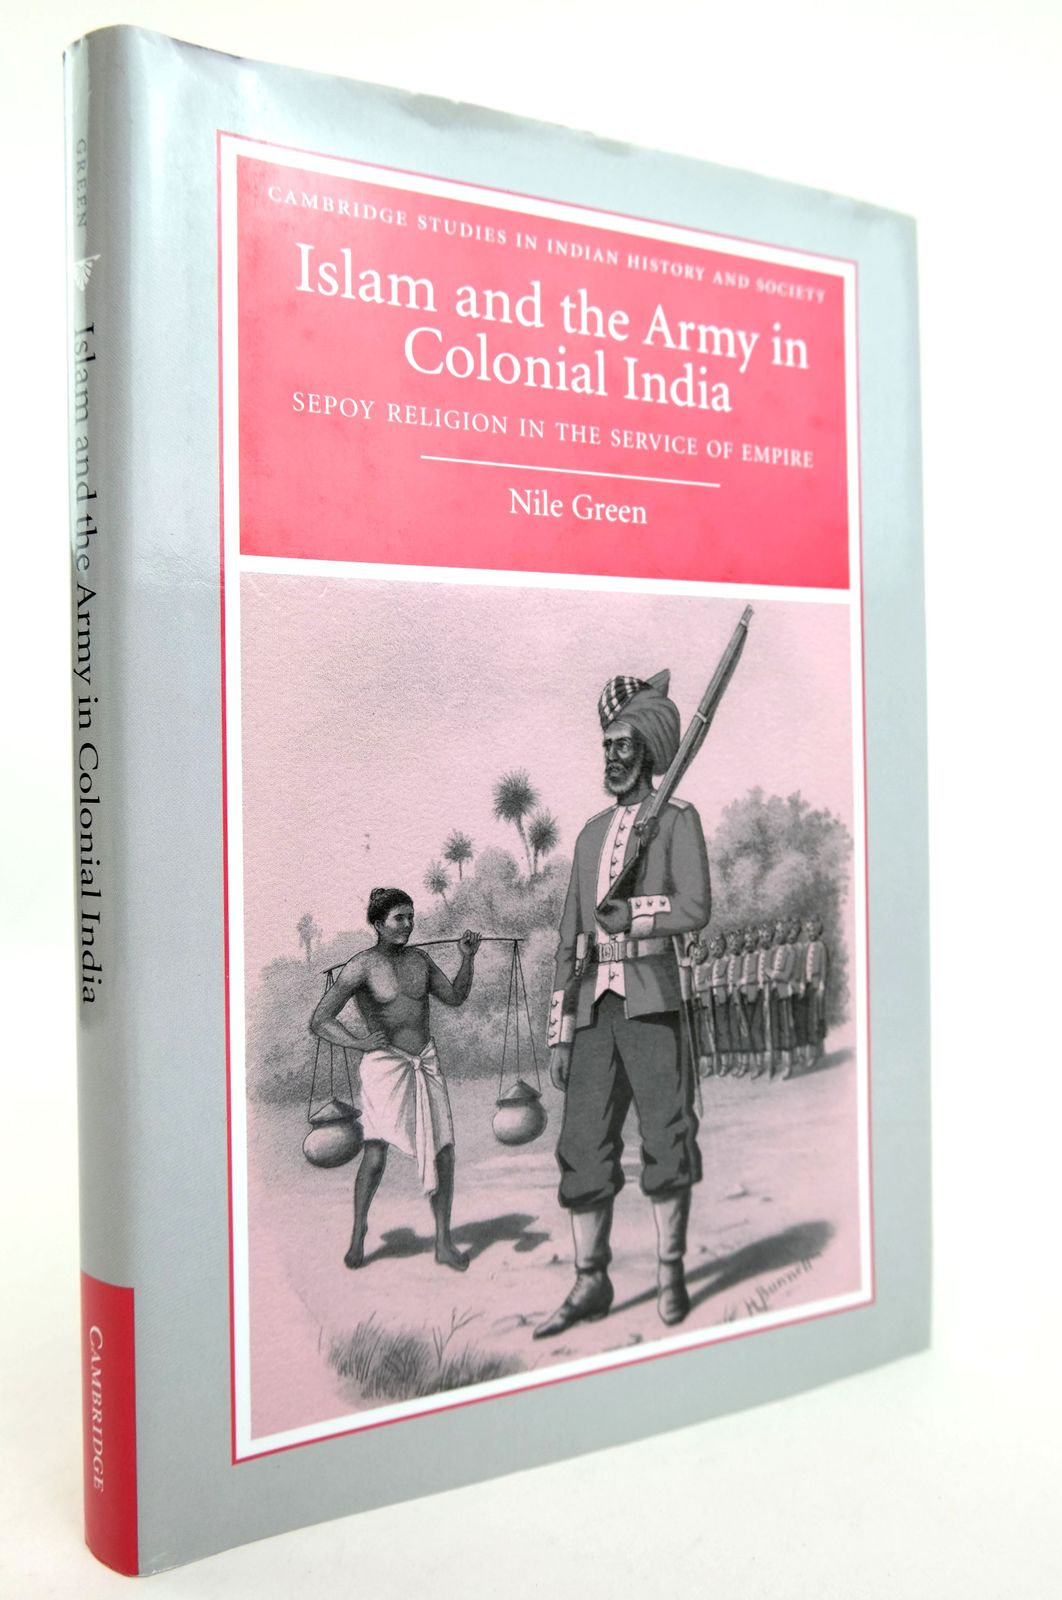 Photo of ISLAM AND THE ARMY IN COLONIAL INDIA: SEPOY RELIGION IN THE SERVICE OF EMPIRE written by Green, Nile published by Cambridge University Press (STOCK CODE: 1818887)  for sale by Stella & Rose's Books